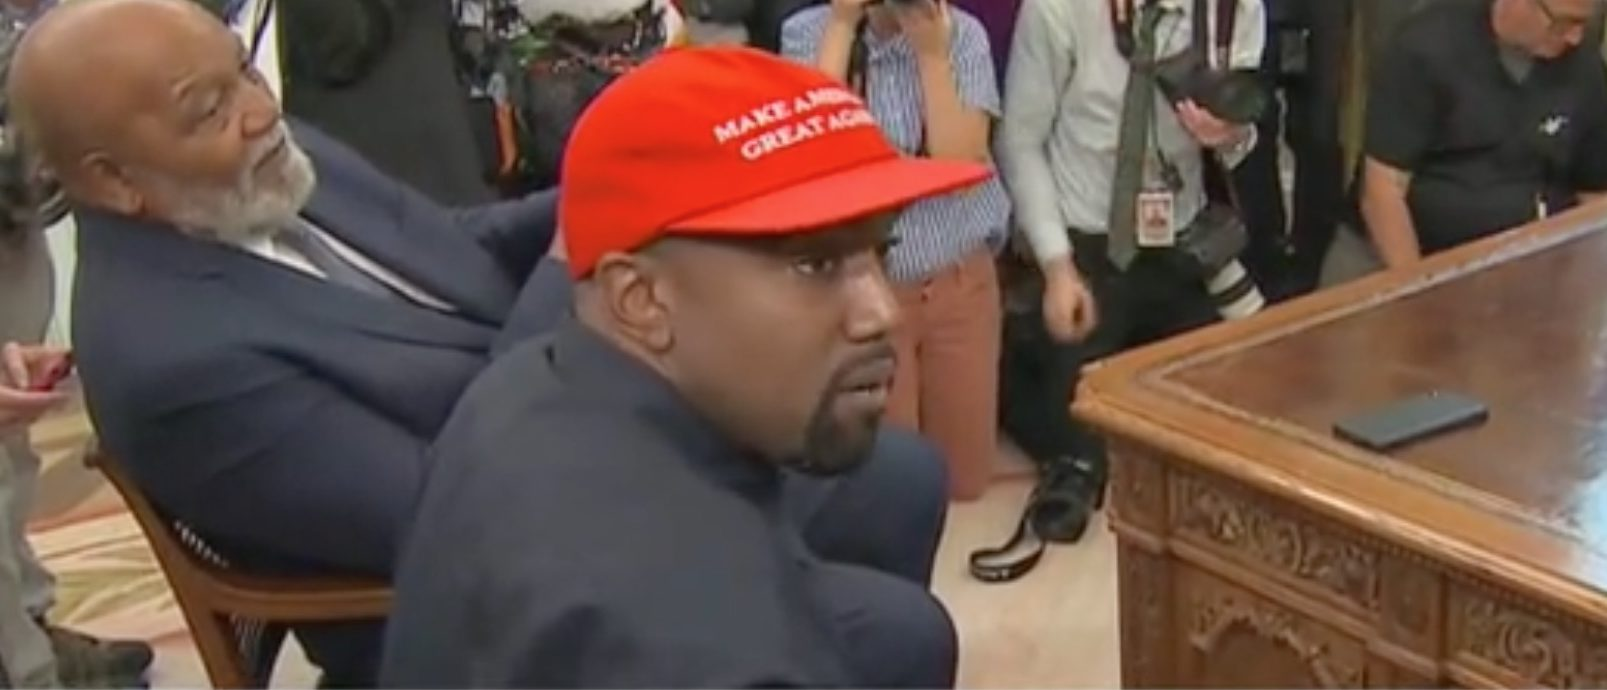 Kanye West Fiercely Defends Second Amendment In Oval Office Meeting